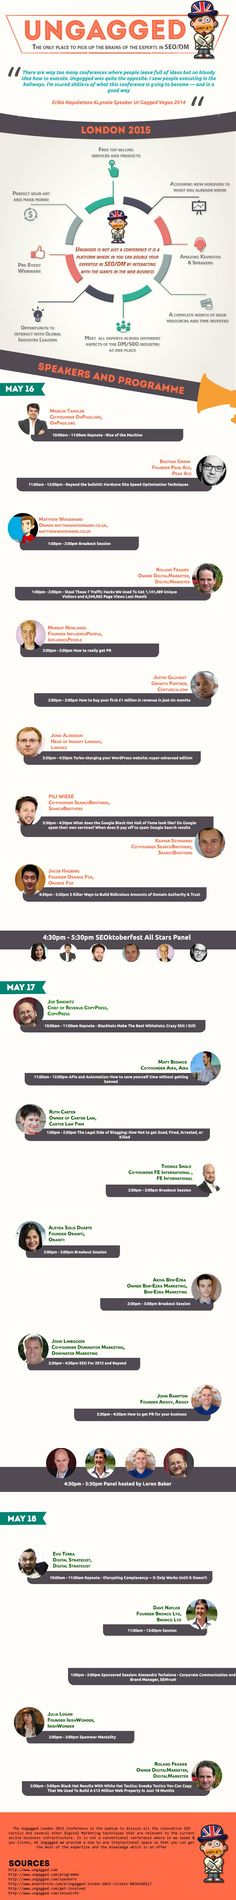 UNGAGGED SEO CONFERENCE [INFOGRAPHIC]